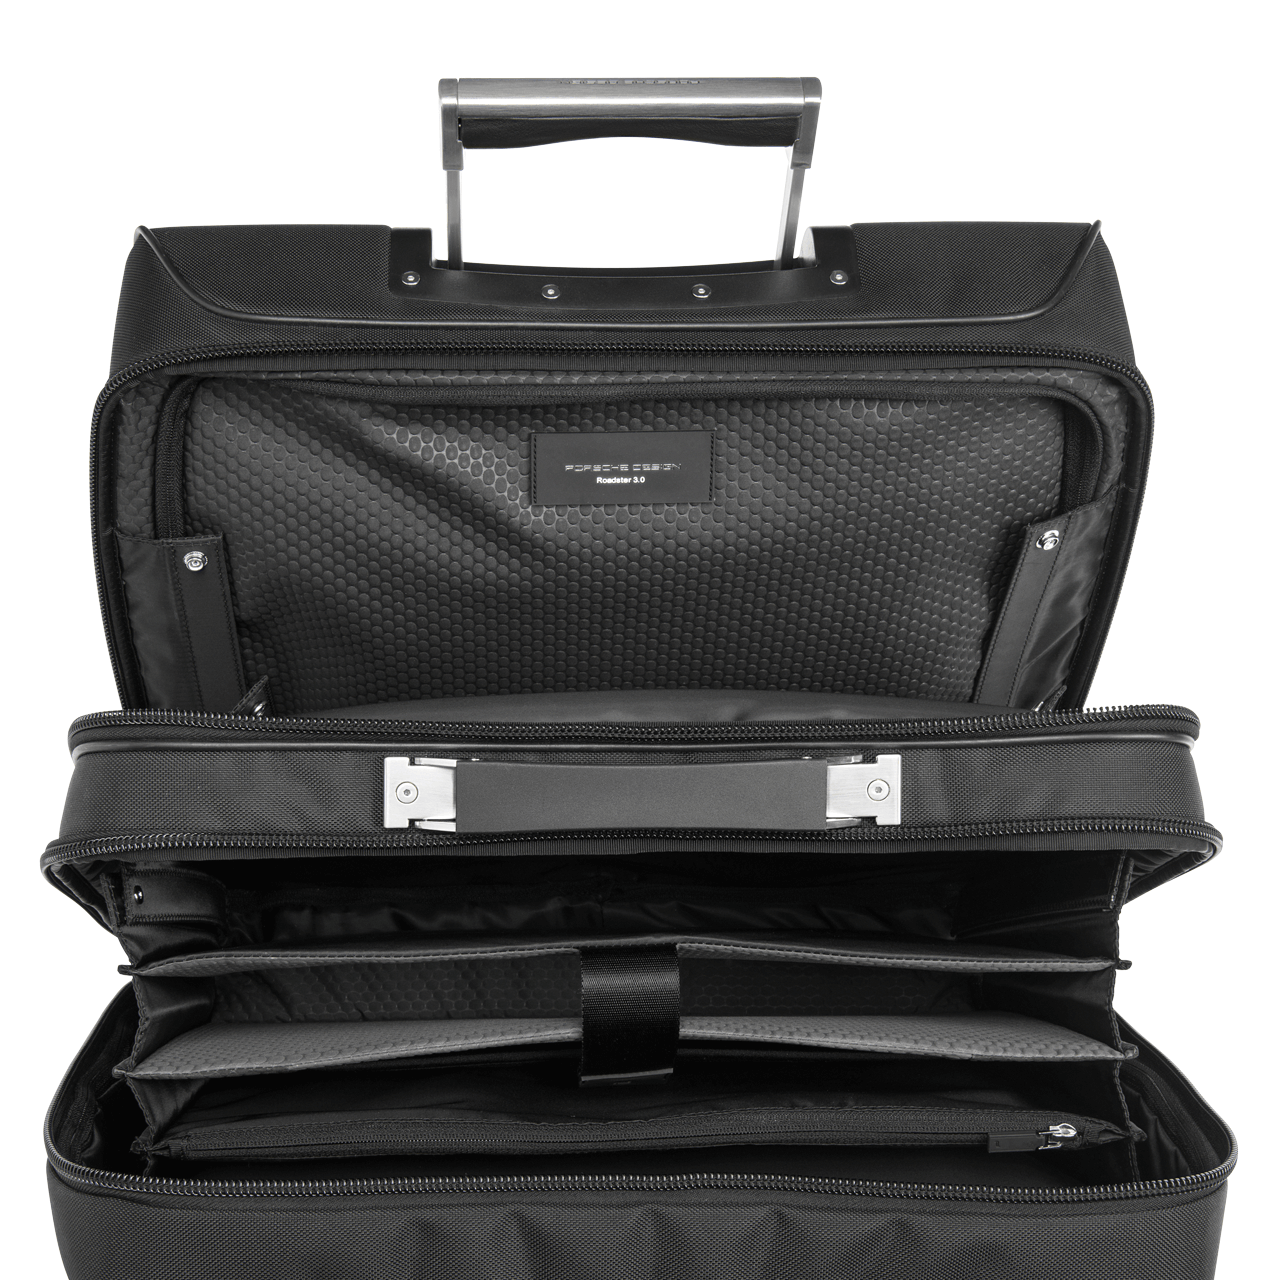 ROADSTER SOFTCASE SERIES TROLLEY BRIEFCASE M - фото 2